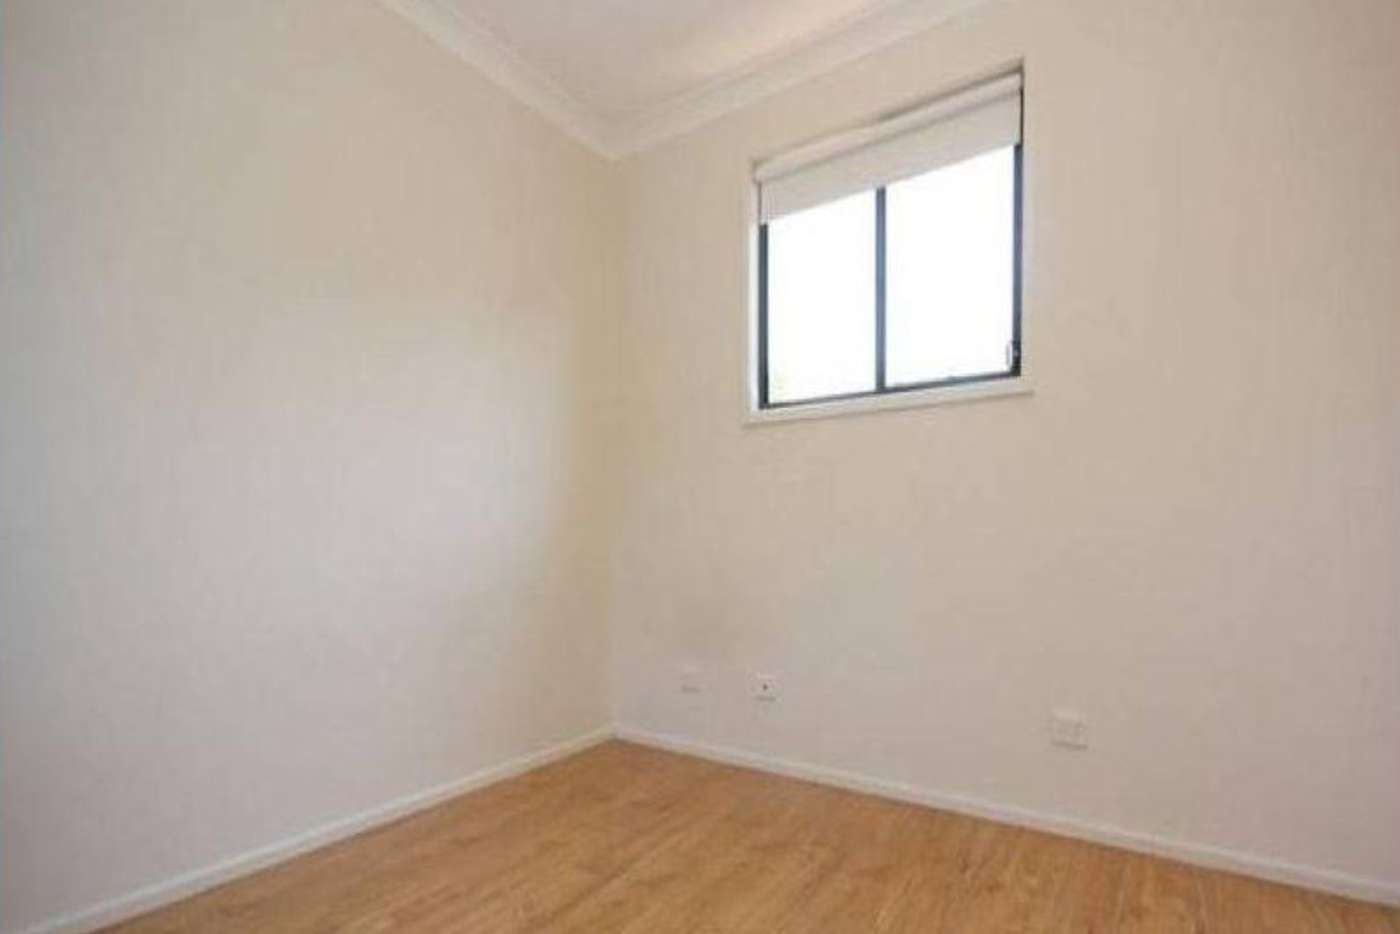 Main view of Homely house listing, 24a Walter Street, Kingswood NSW 2747